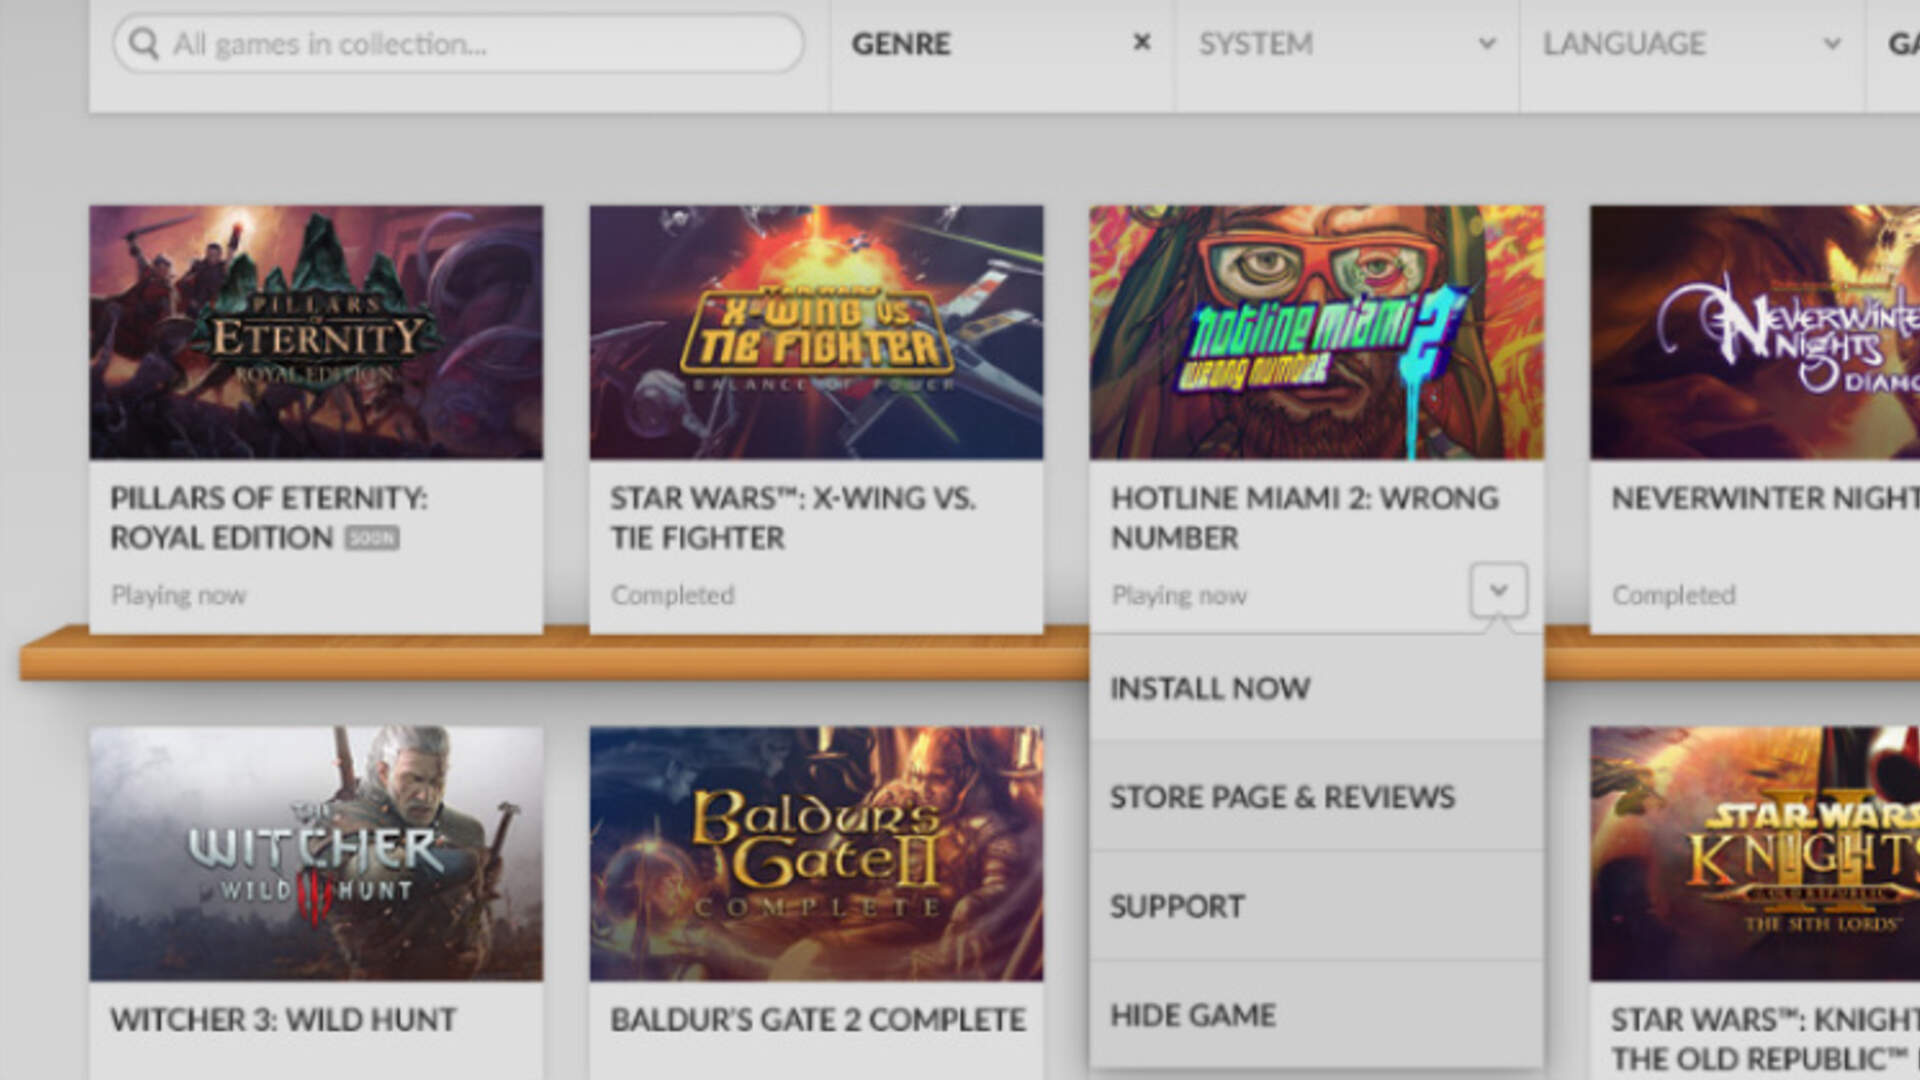 GOG Connect Gives You DRM-free Versions of Your Steam Games